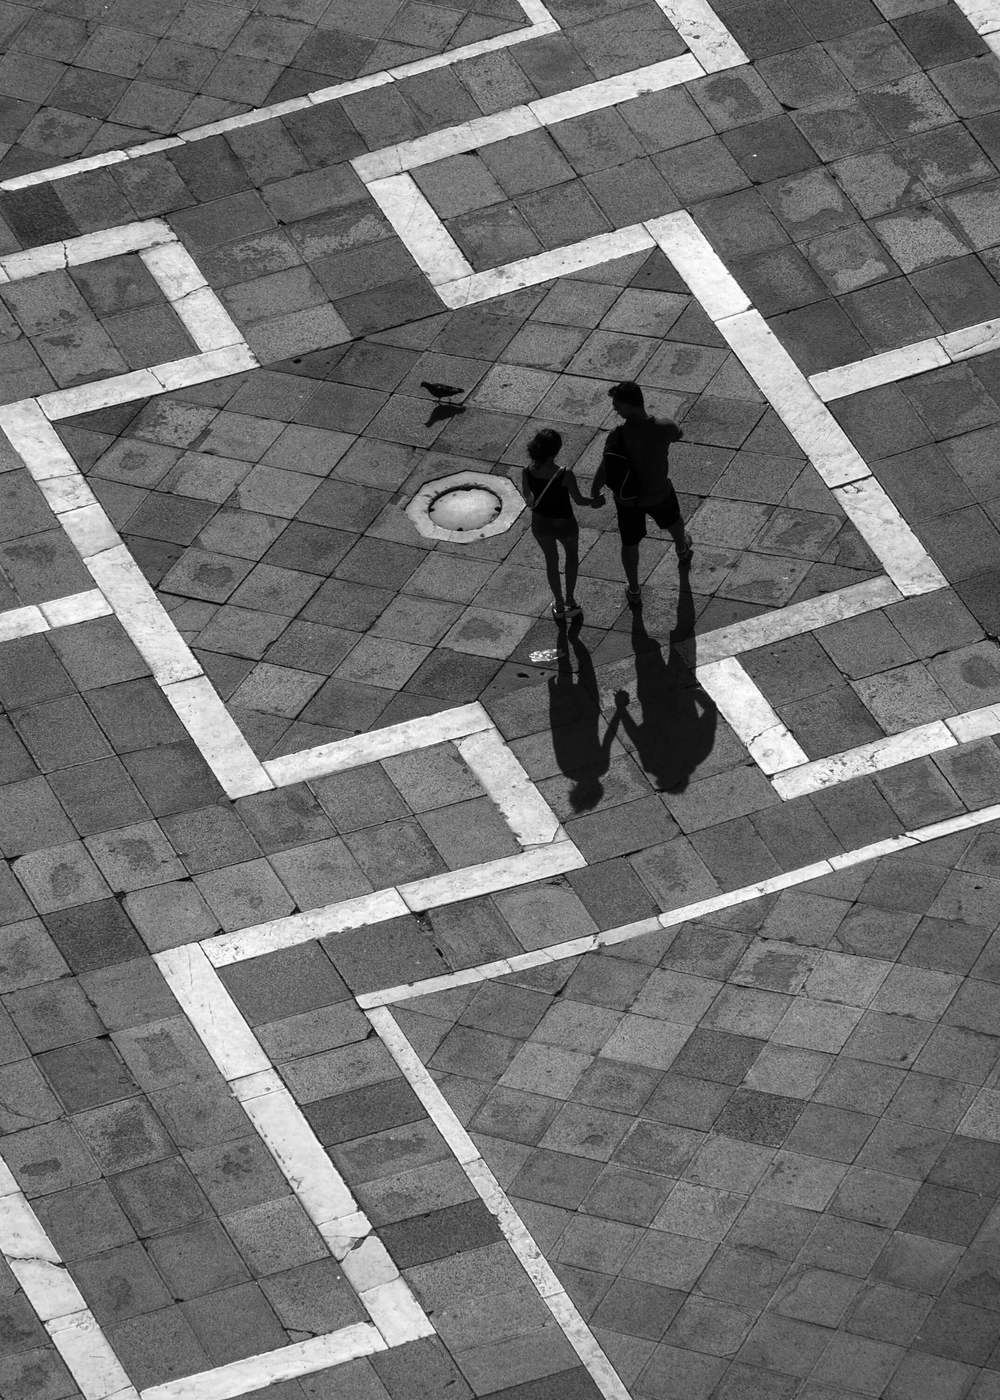 A photograph of a couple taken at San Marco square in Venice